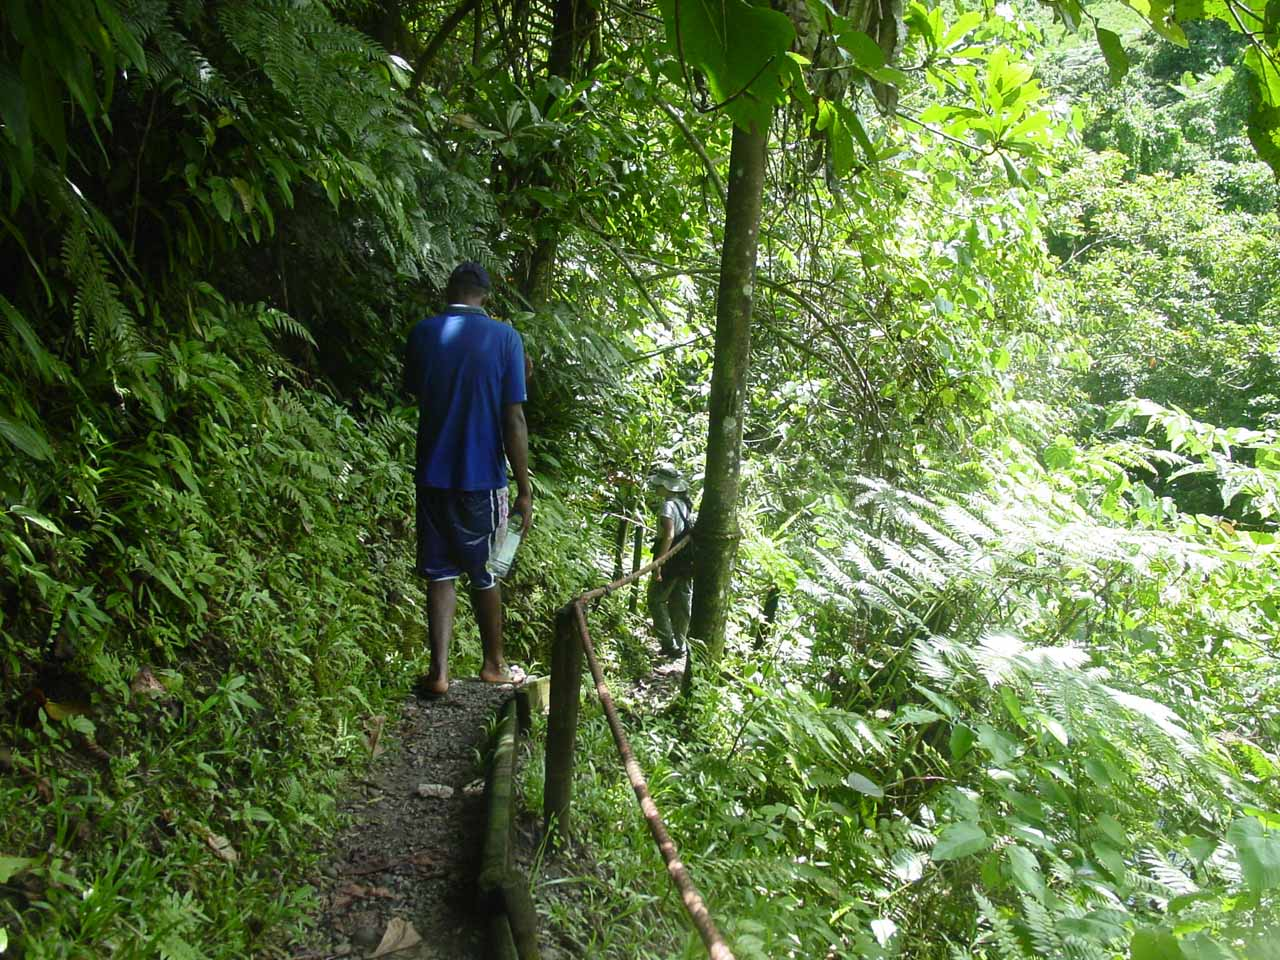 Still on the forested trail